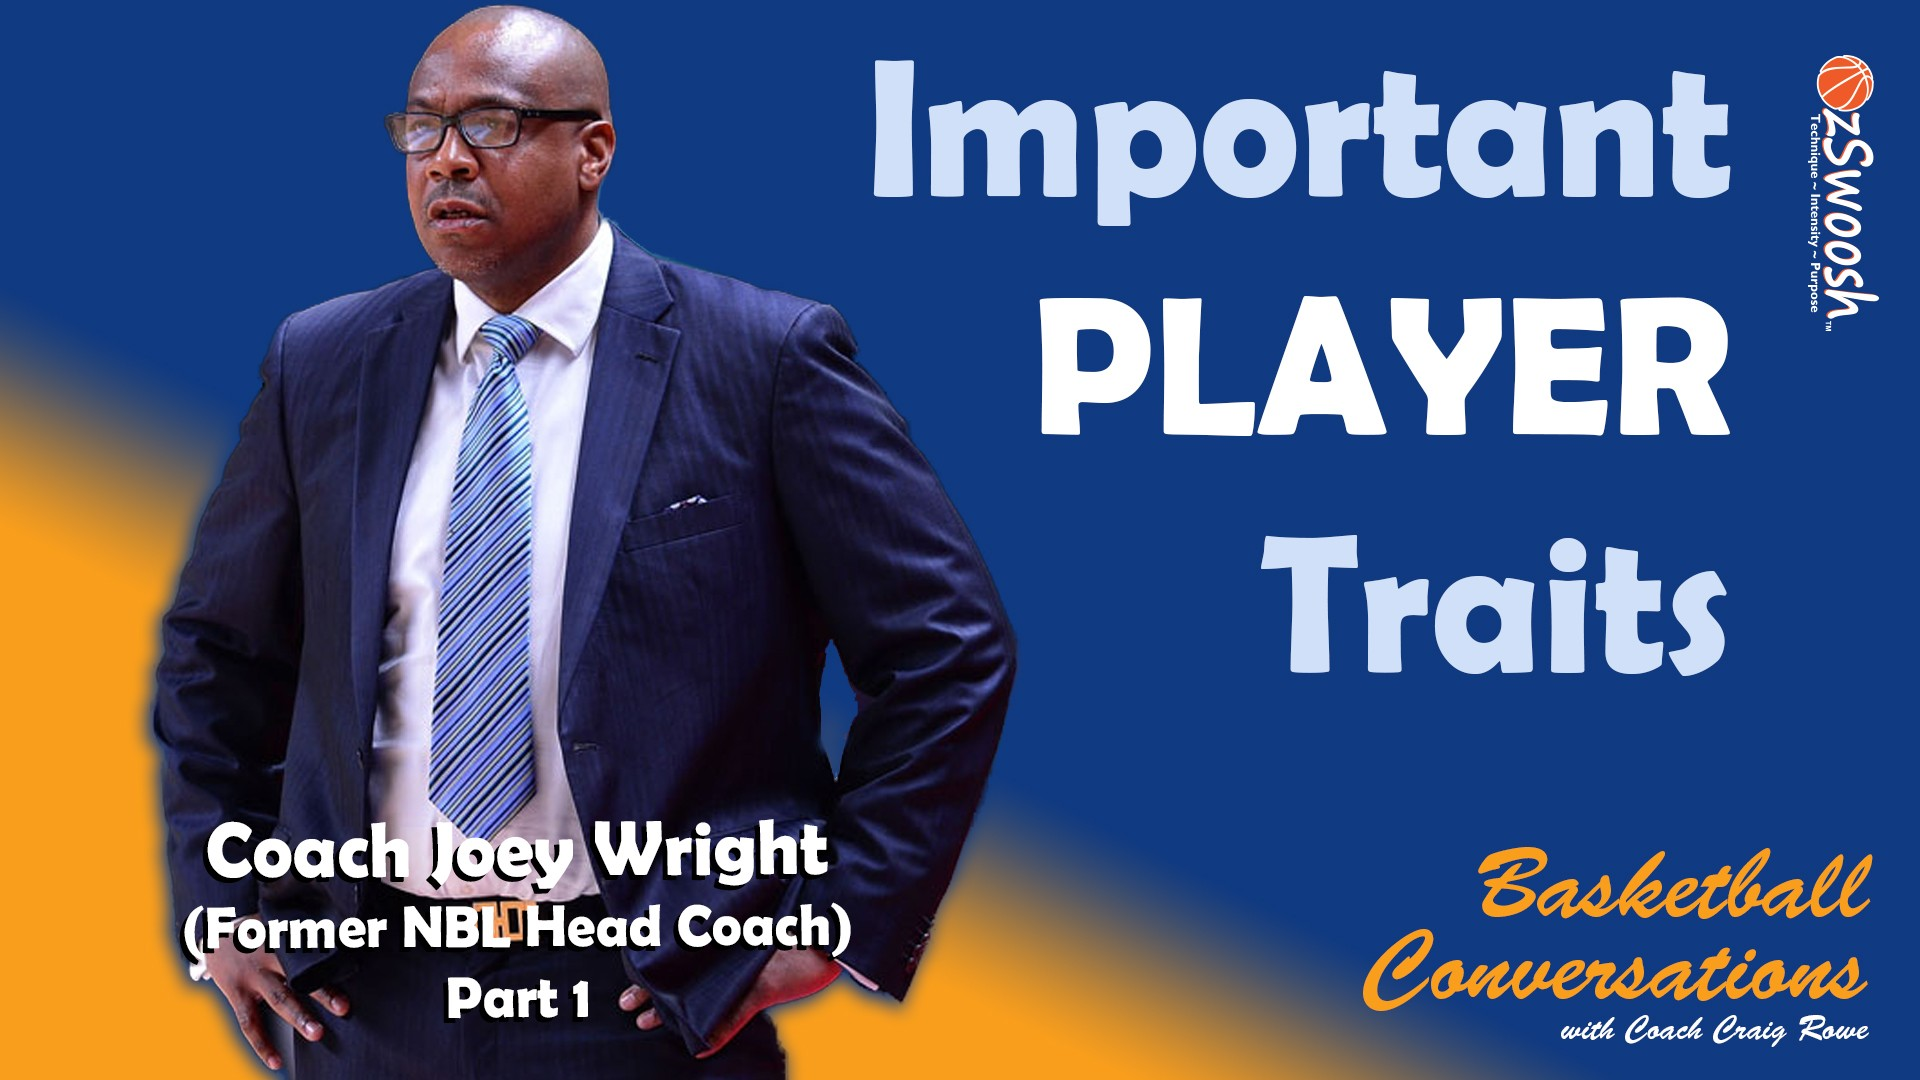 Basketball Player Recruitment - Coach Joey Wright Interview